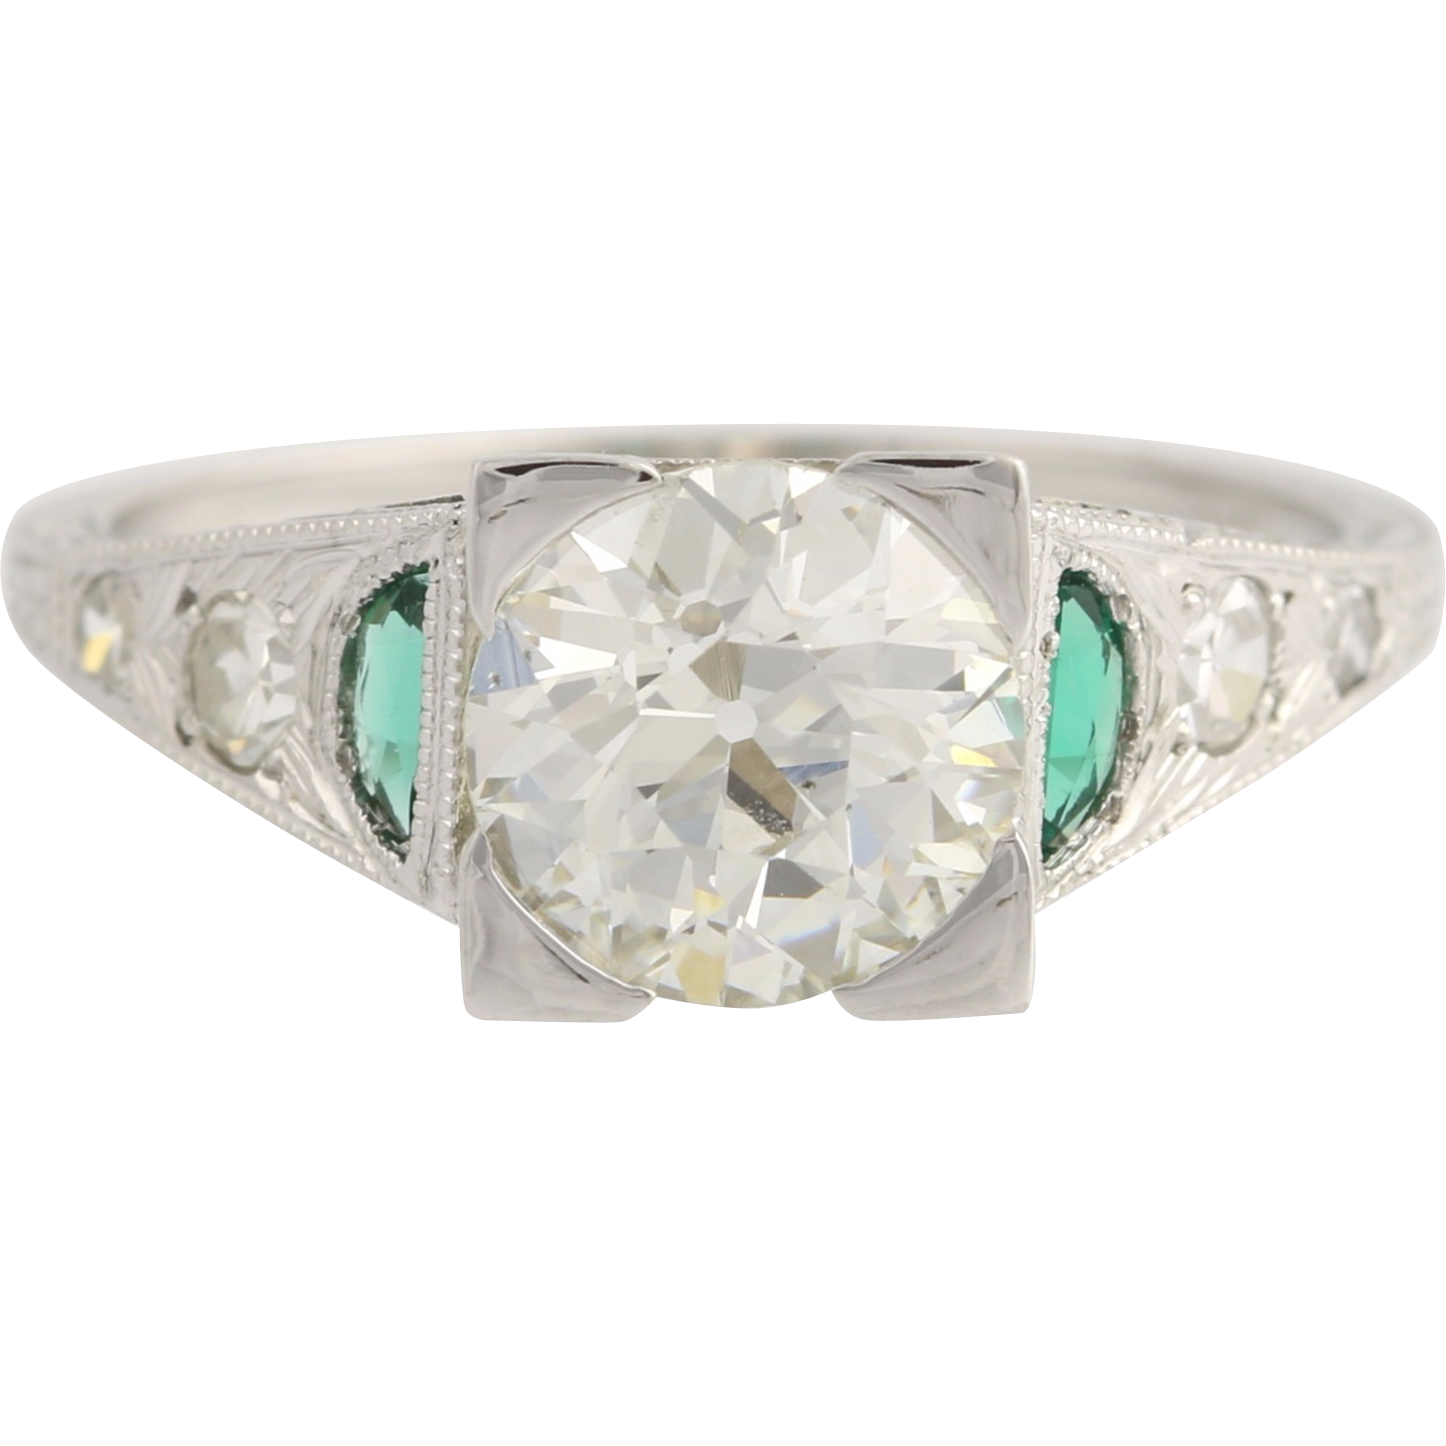 Art Deco Engagement Ring Diamond & Syn Emerald - 18k White Gold GIA Cert 1.57ctw